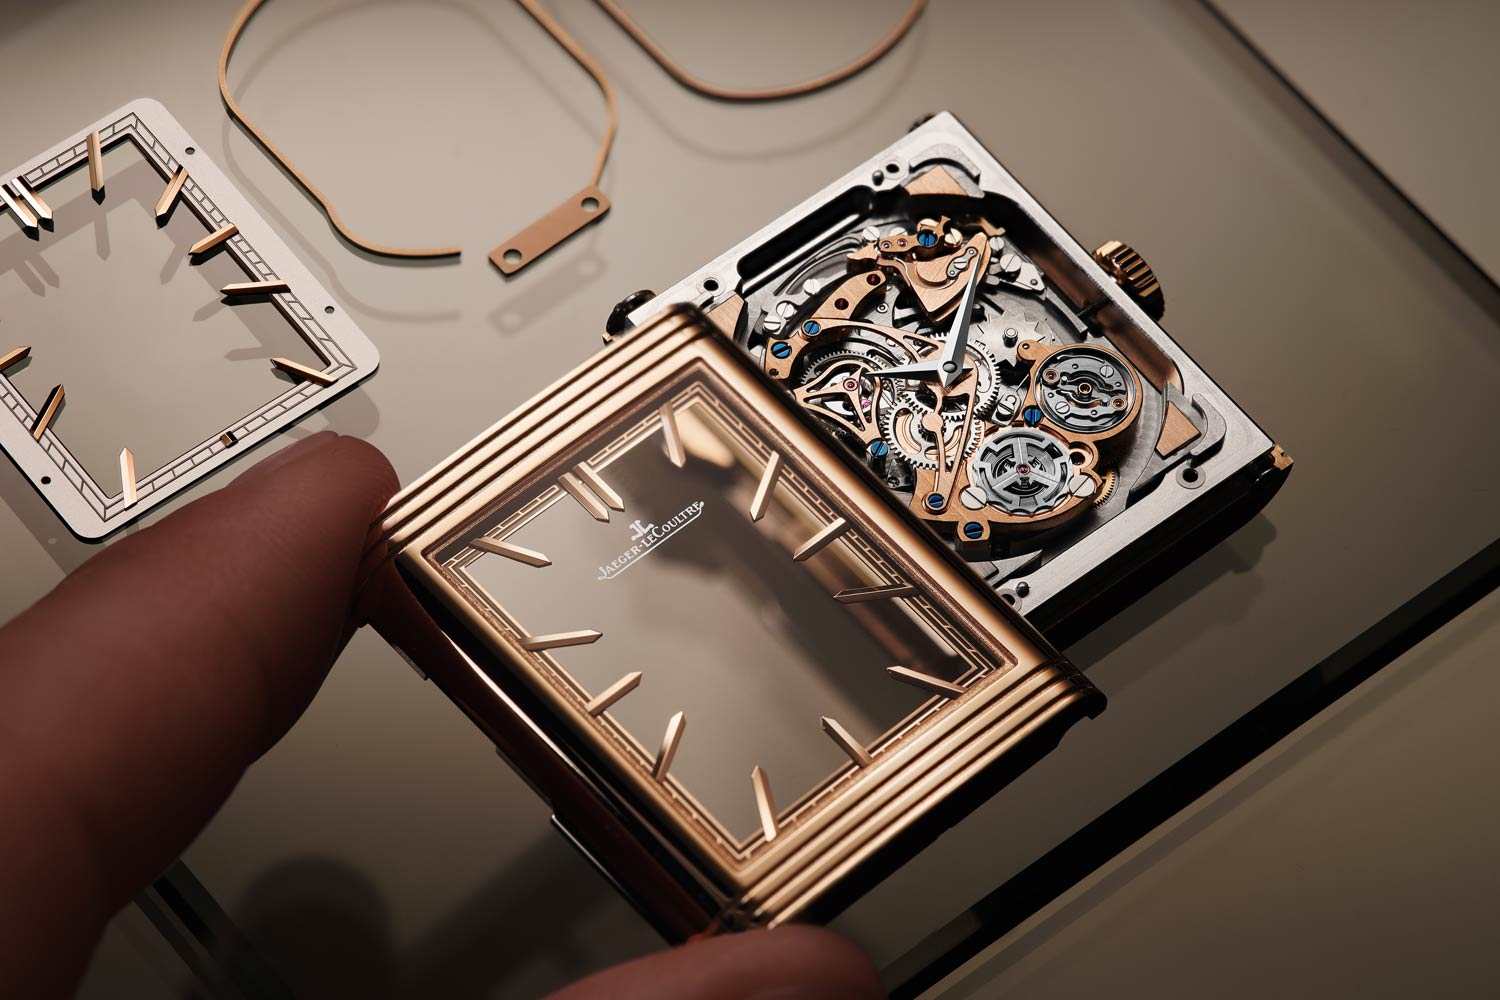 The watch presents a clearly defined architecture - a large bow-shaped bridge sweeping from 11 o'clock to 7 o'clock, faceted indexes that are cantilevered from the chemin de fer minutes track and gleaming, contrasting finishes.